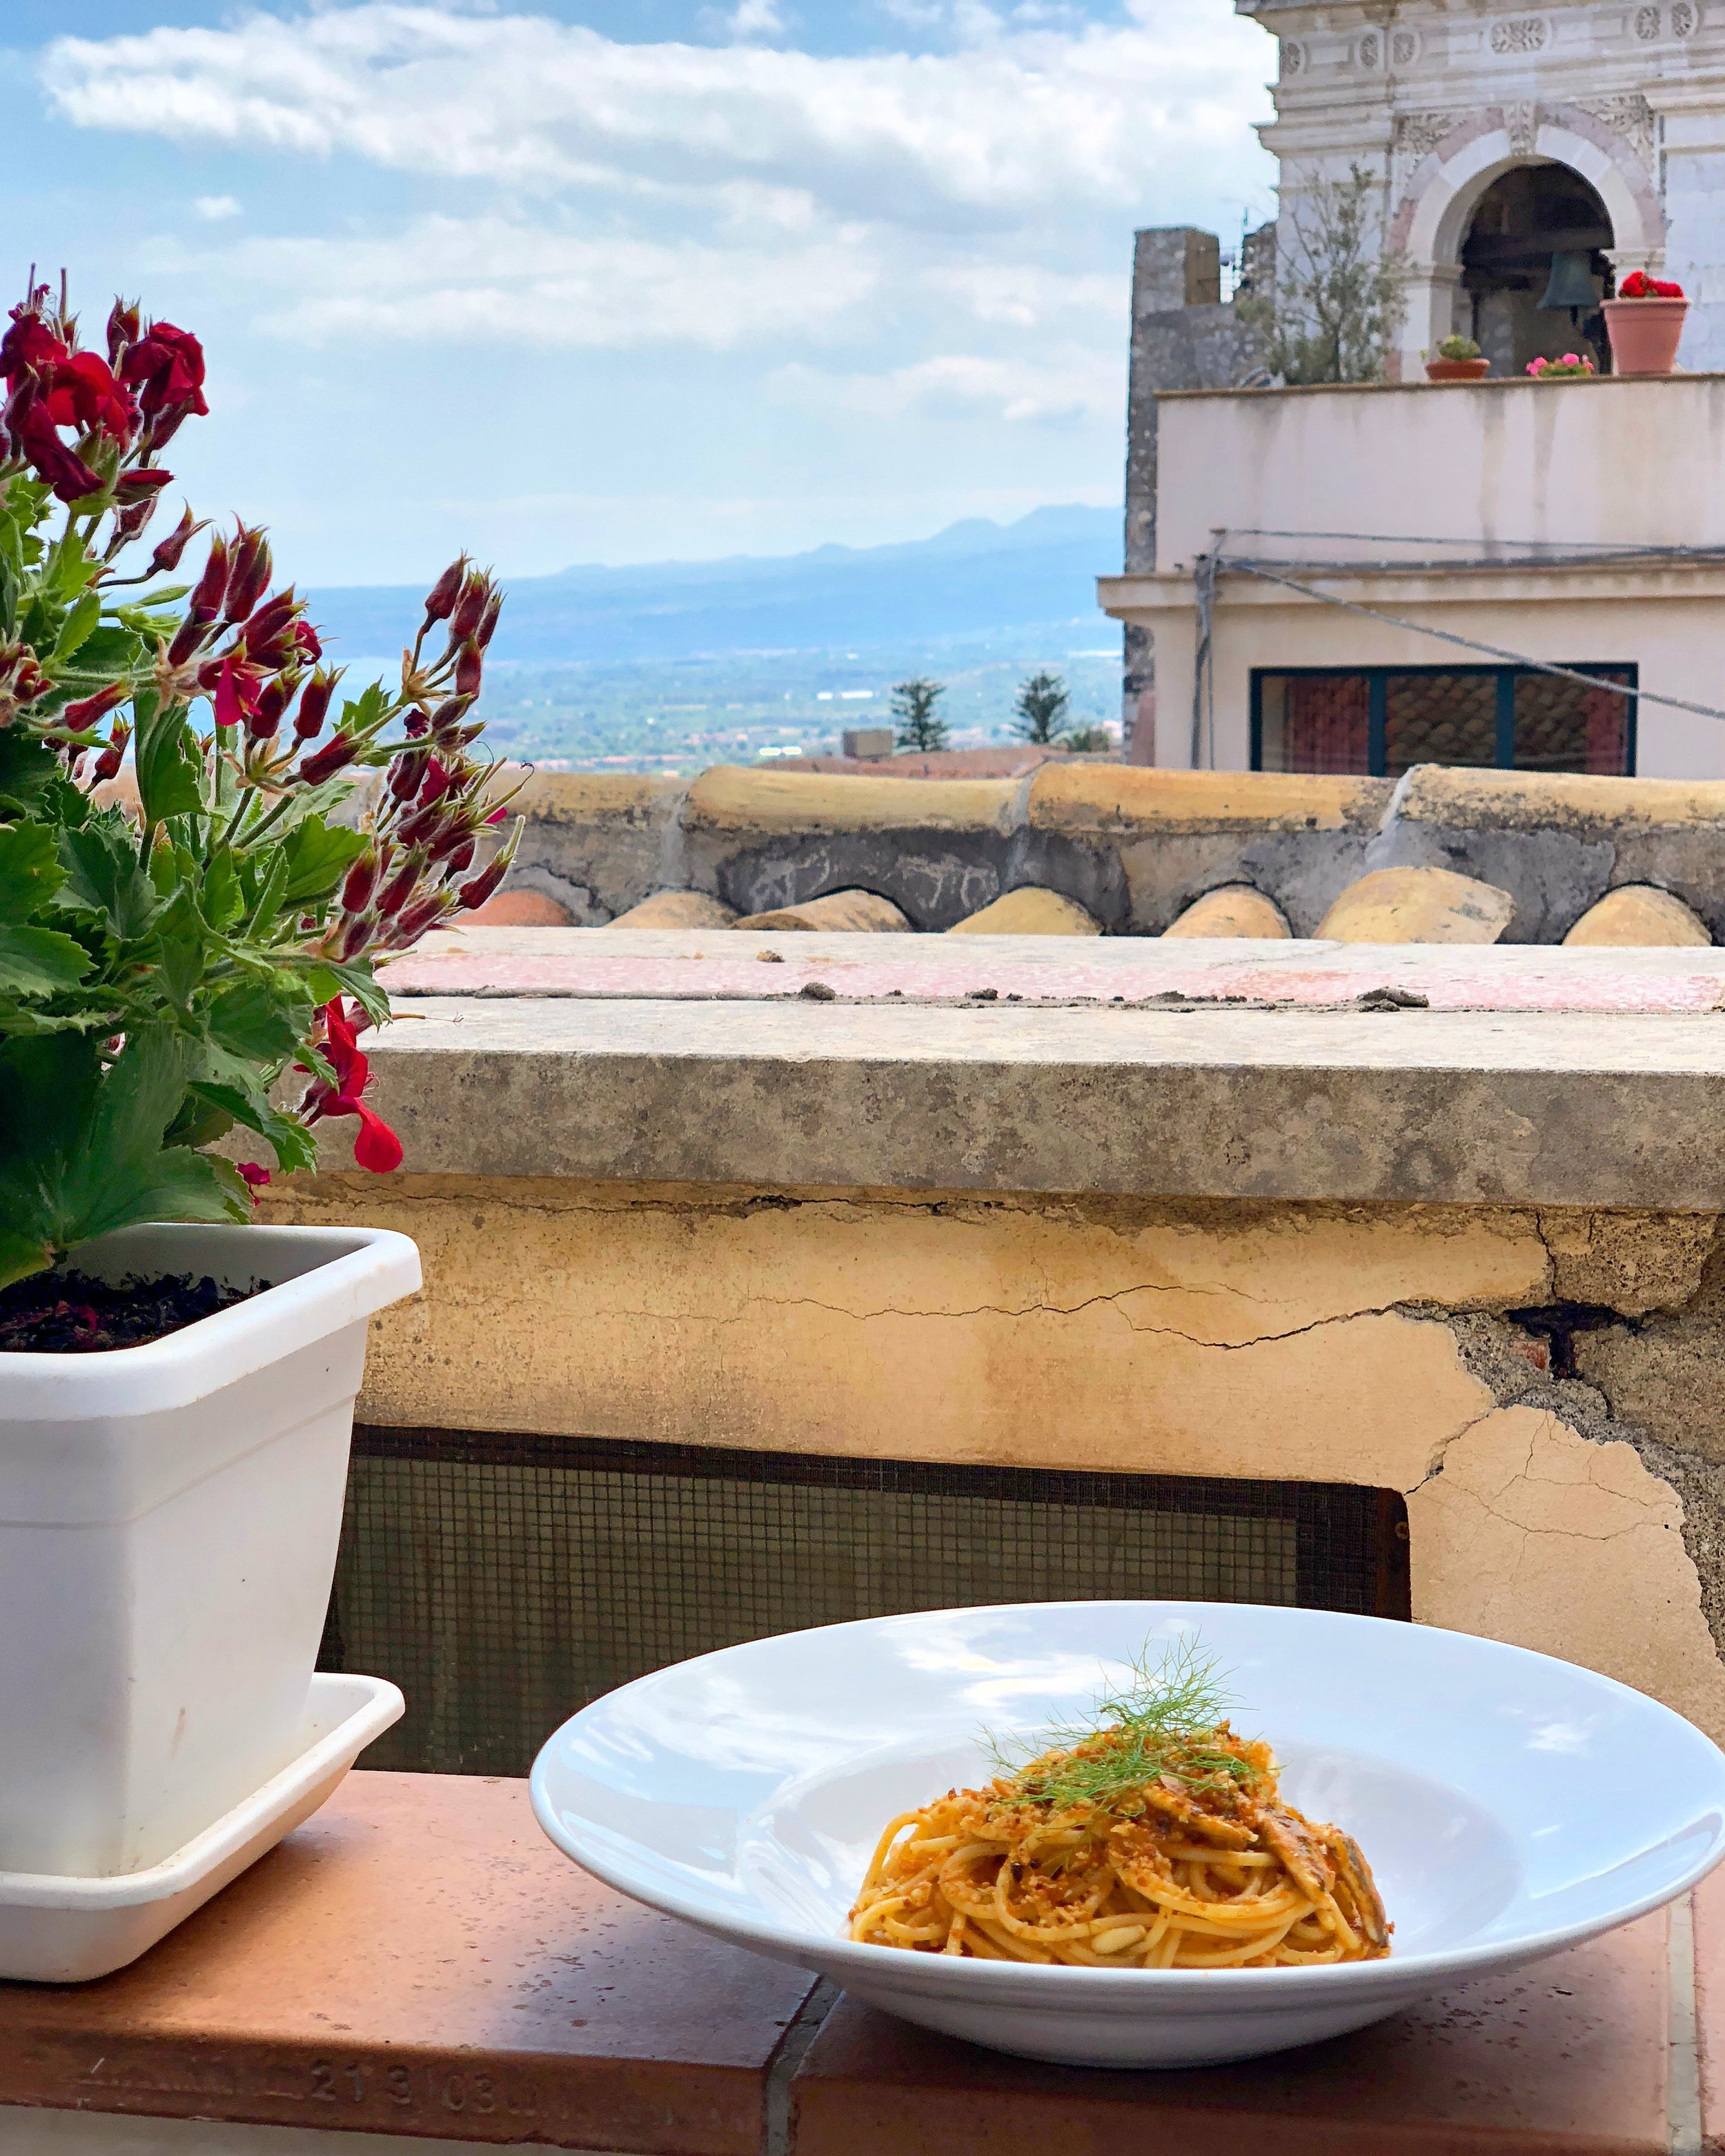 The meal and view from Vicolo Stretto